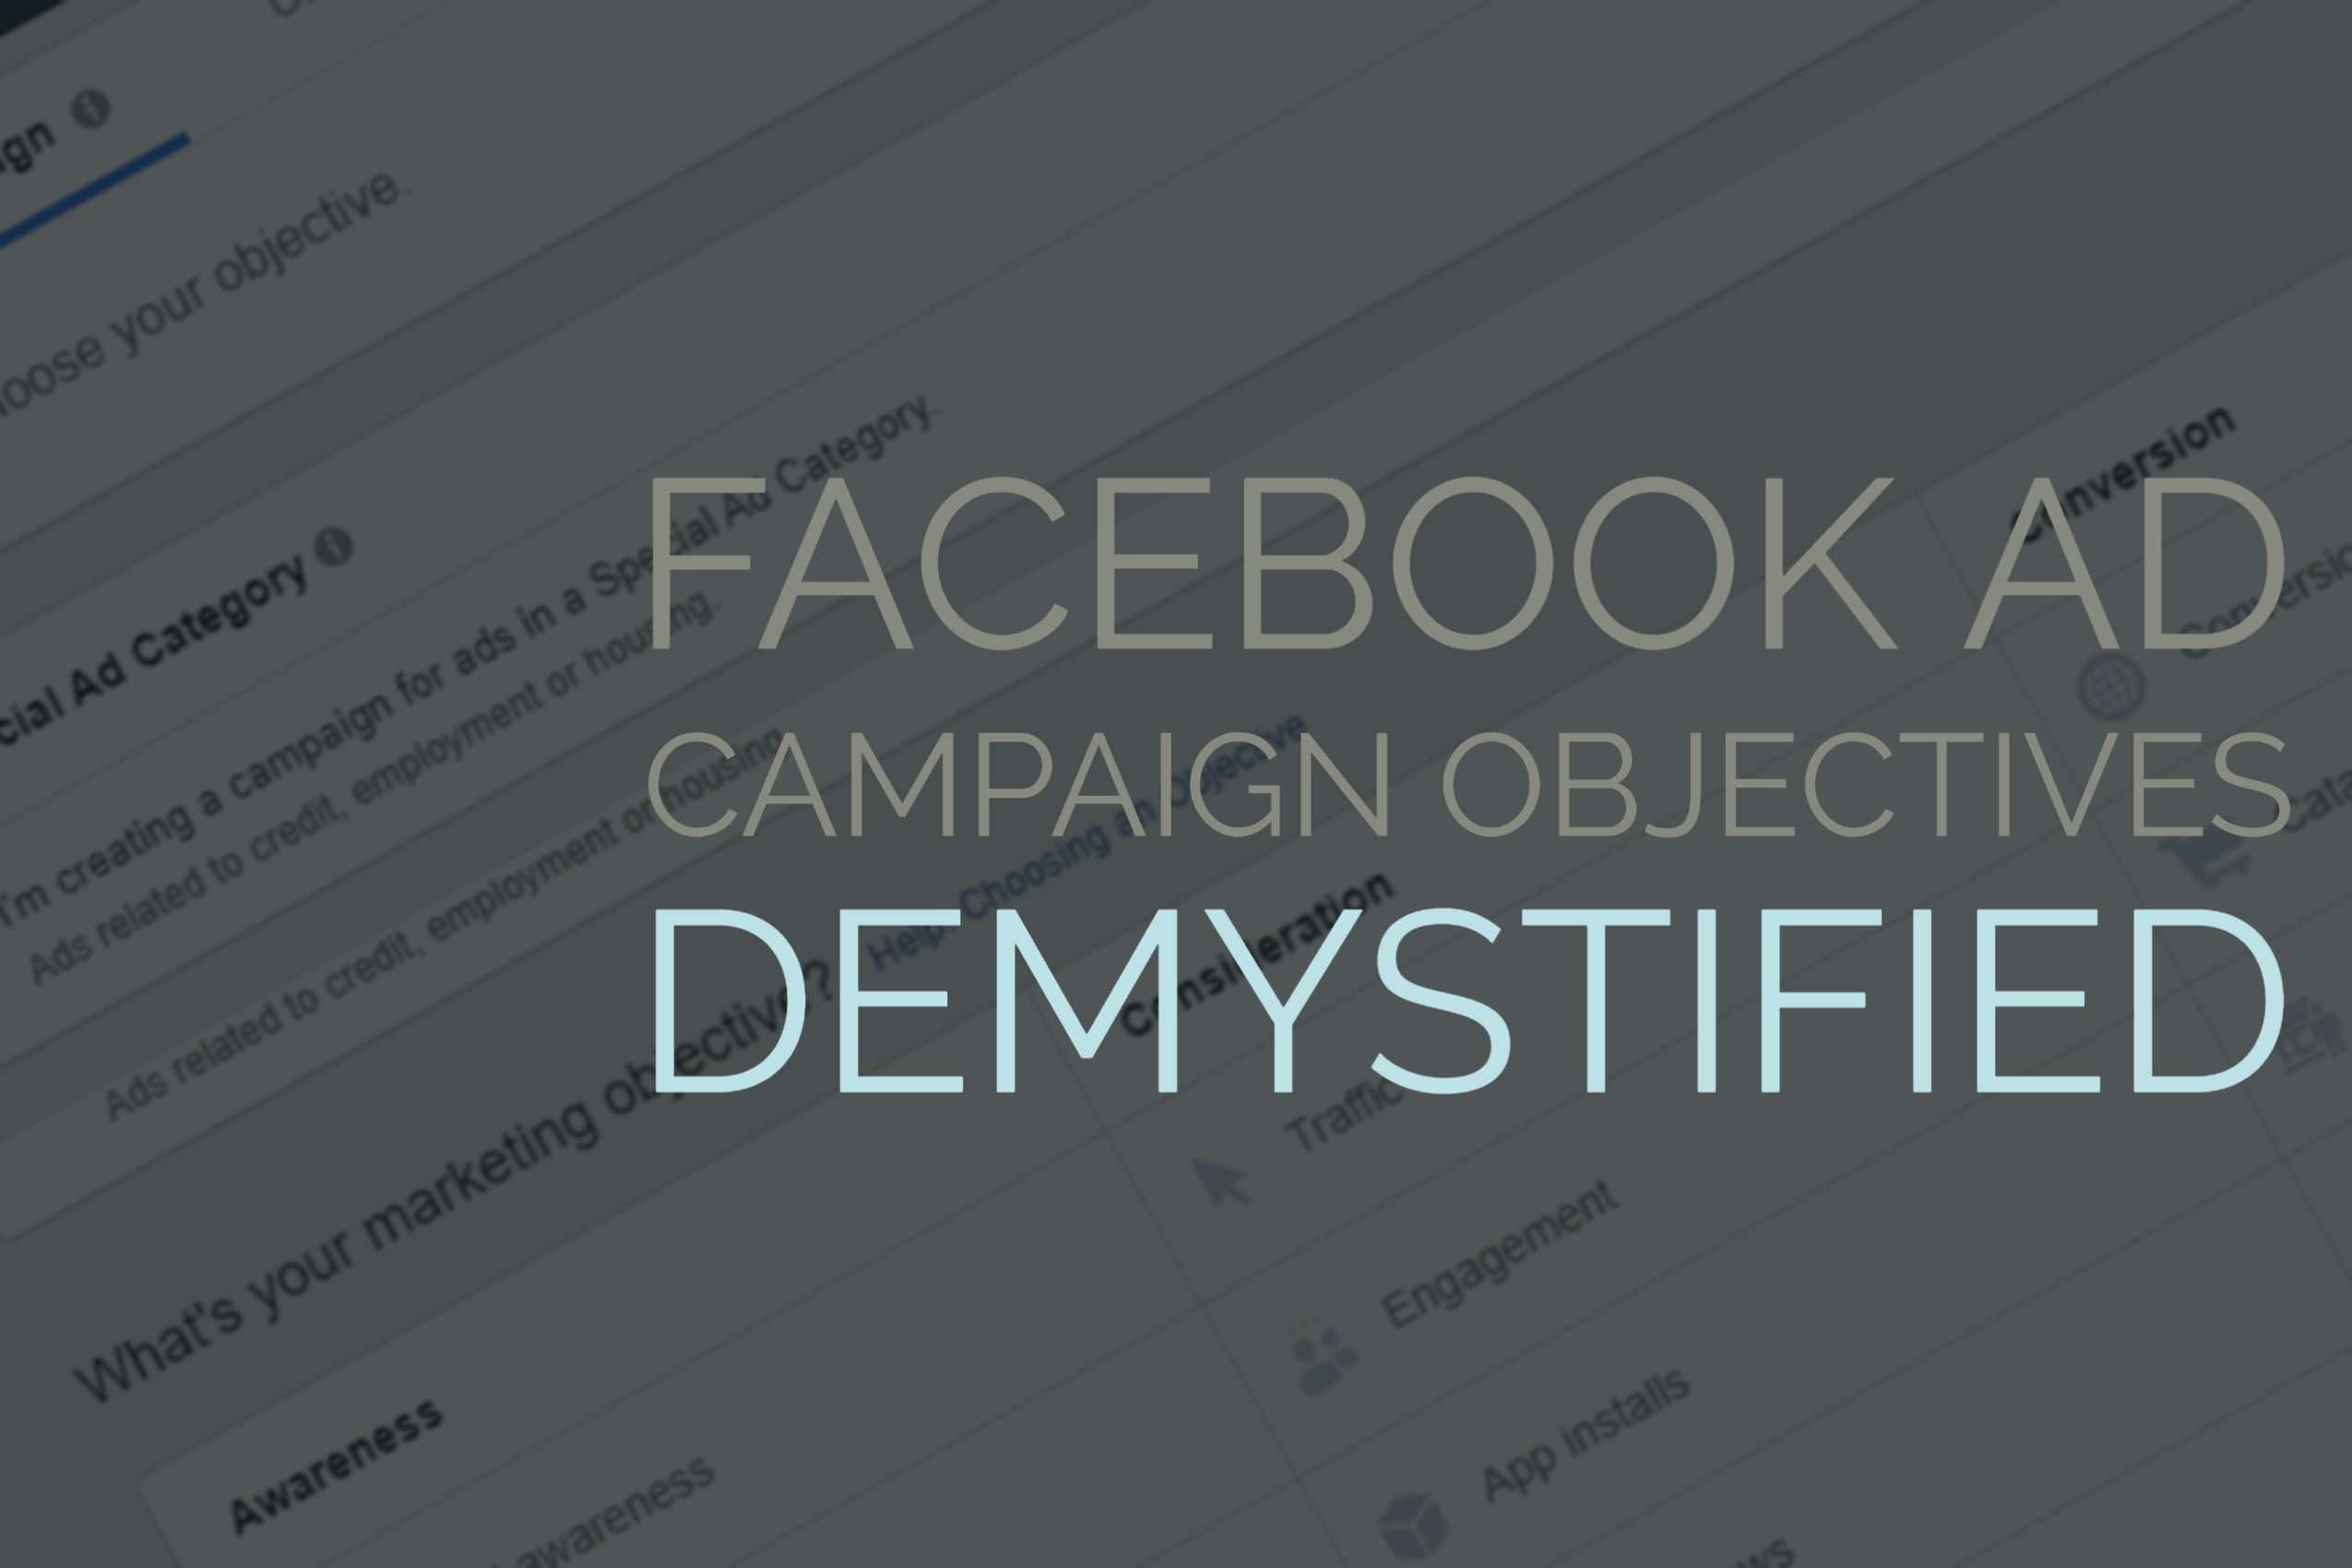 Facebook Campaign Objectives Demystified